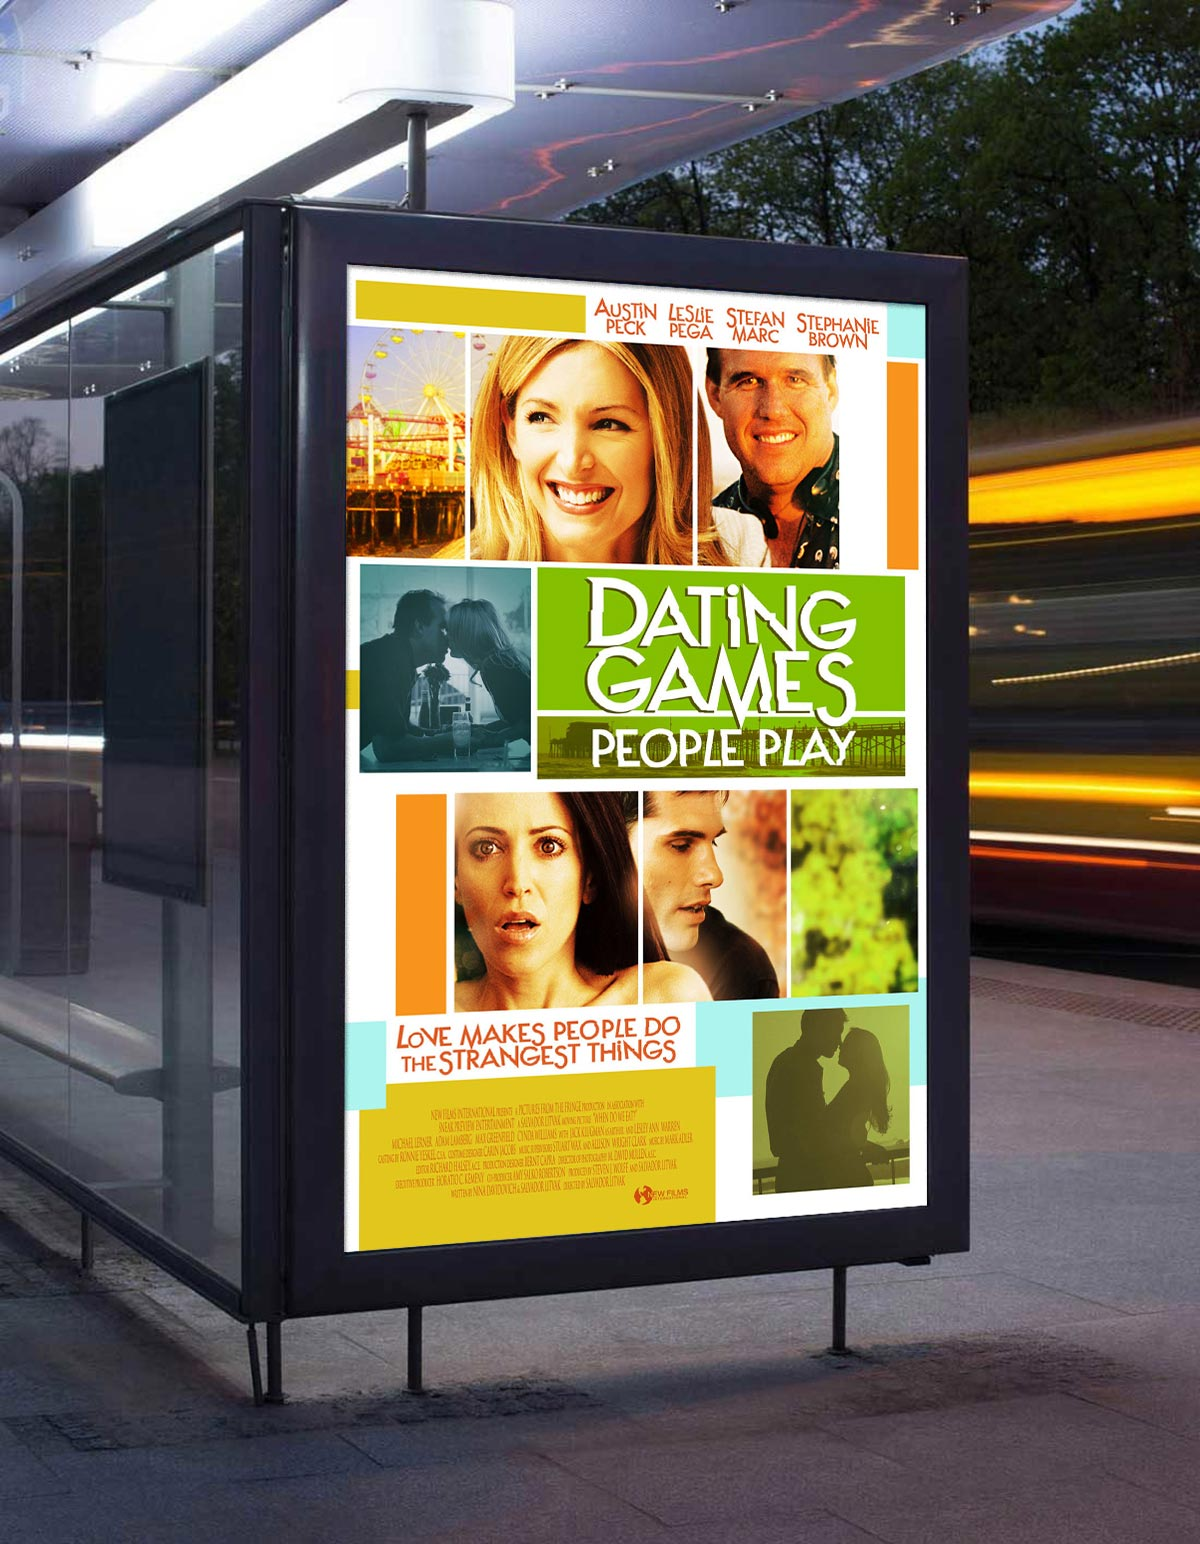 dating-games-people-play-mockup